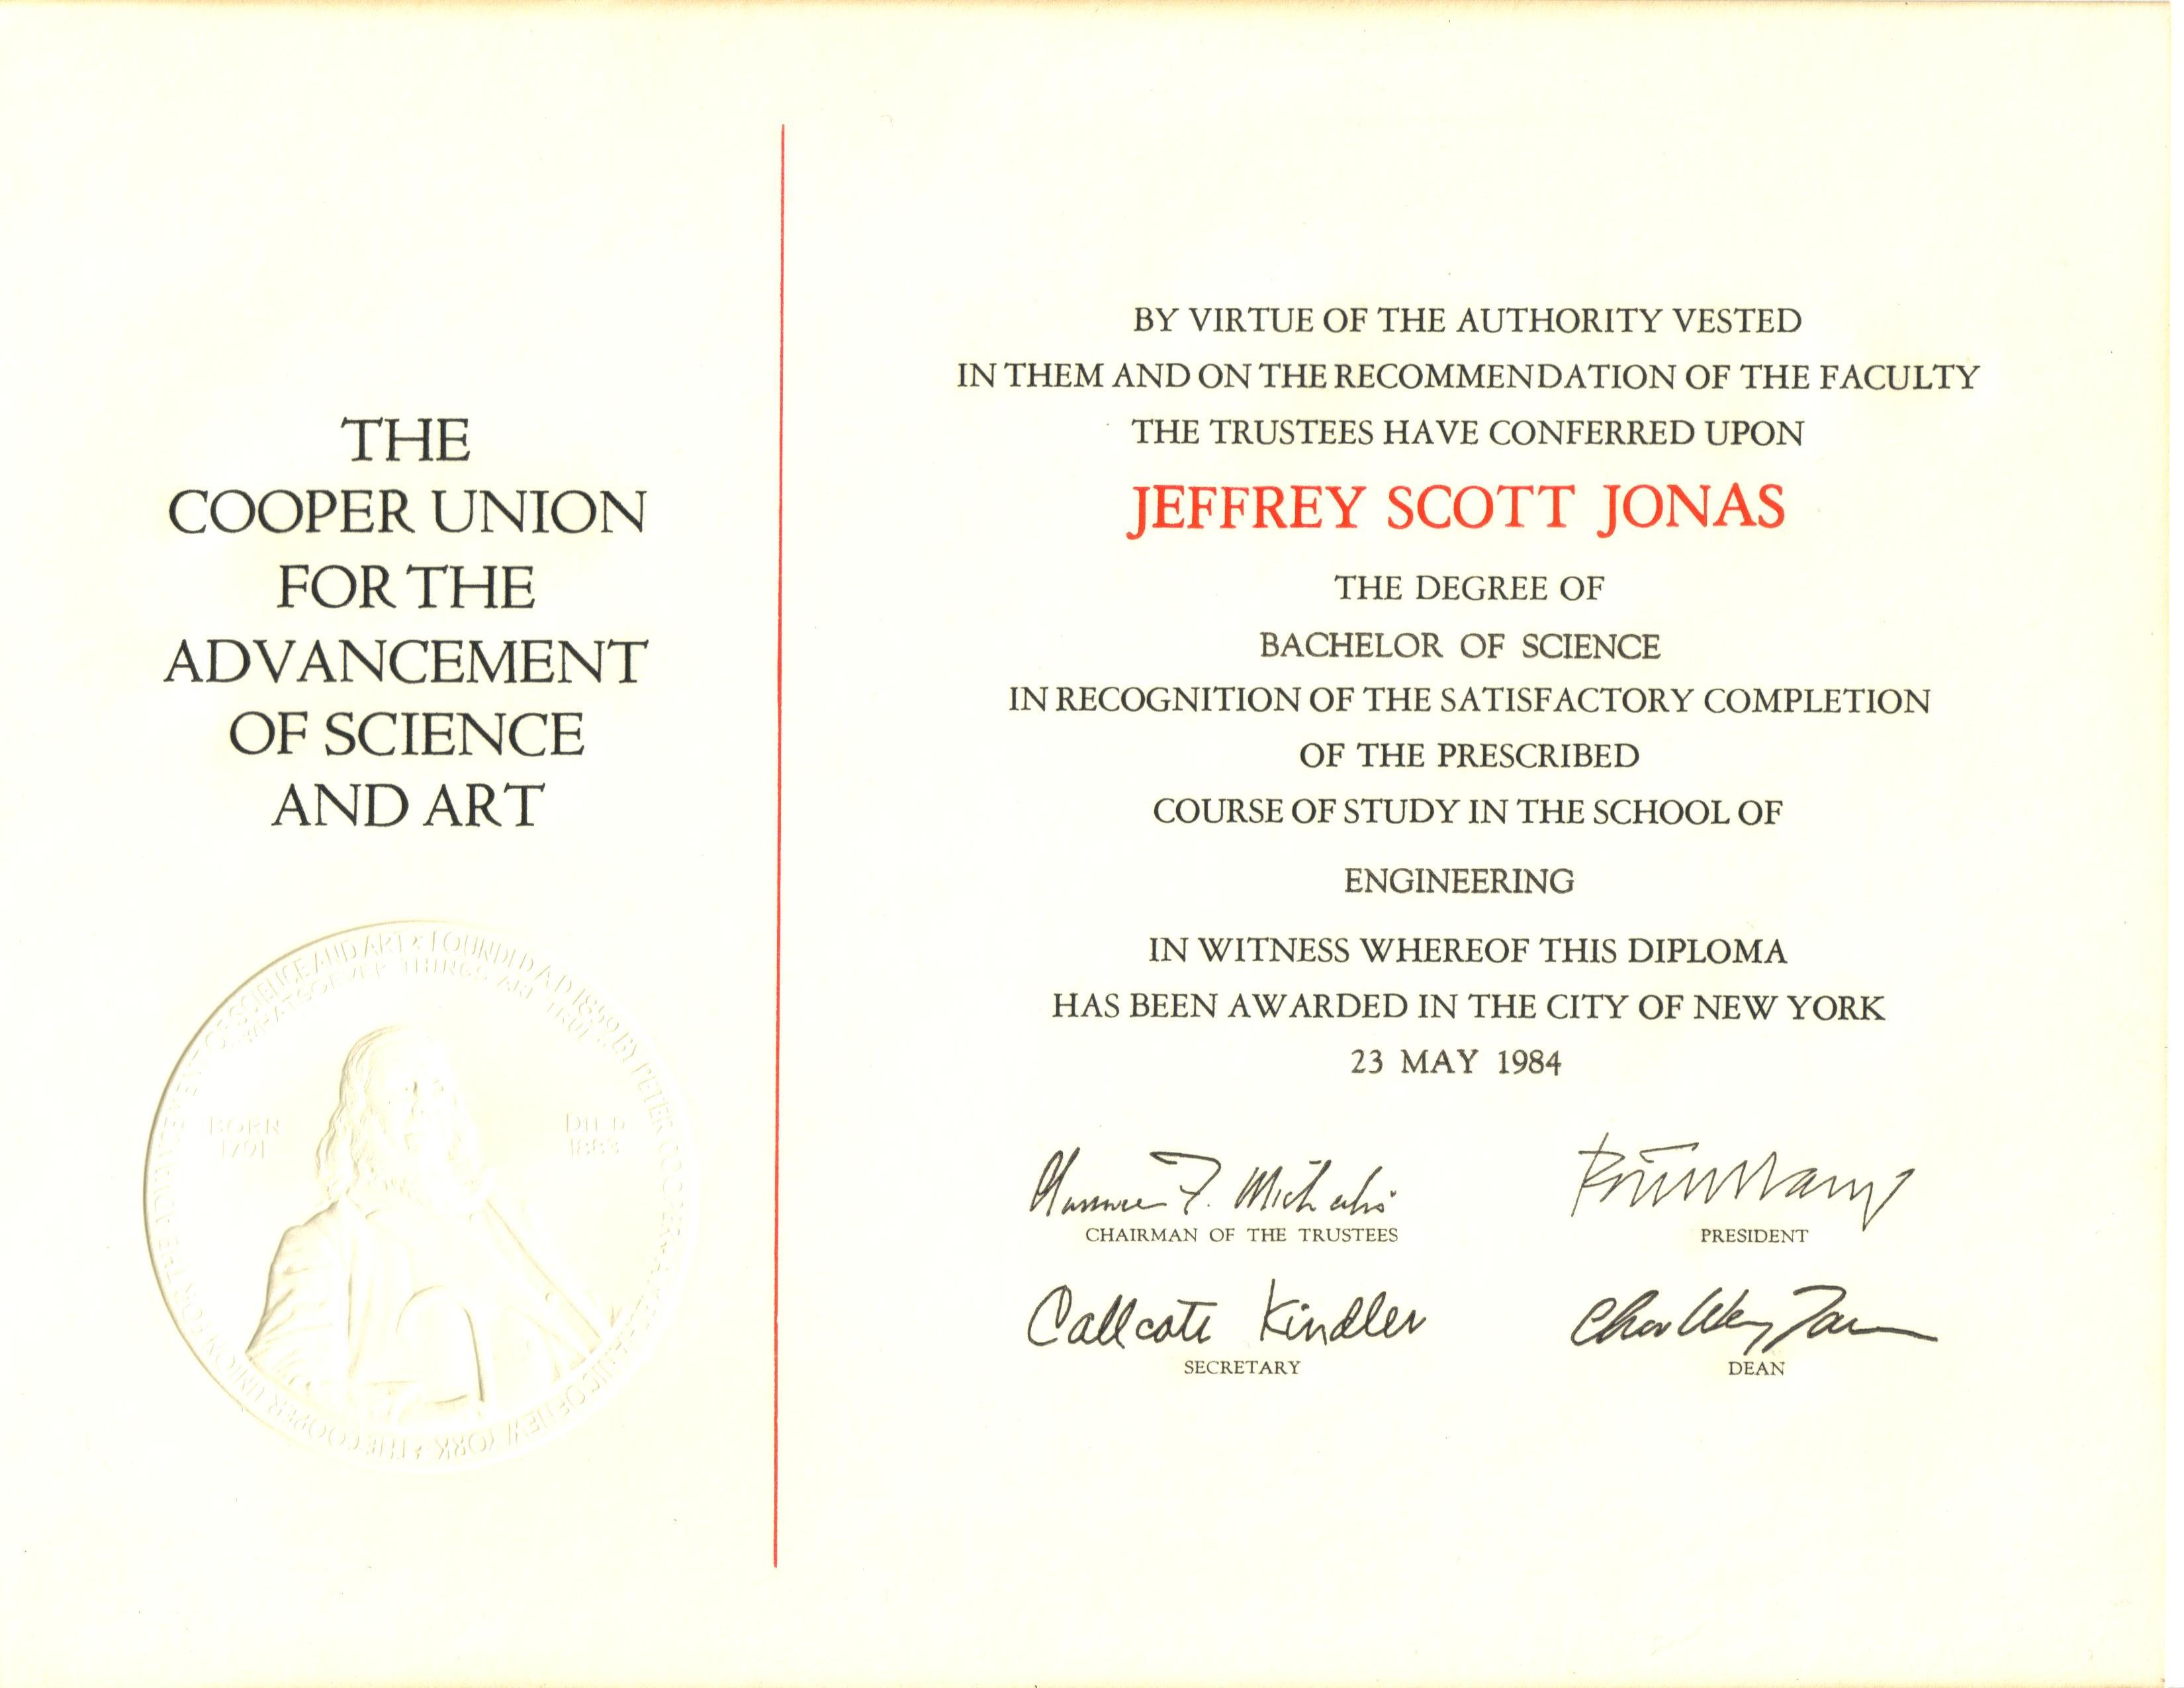 jeffrey jonas certifications degrees diplomas honors the cooper union school of engineering bachelor of science